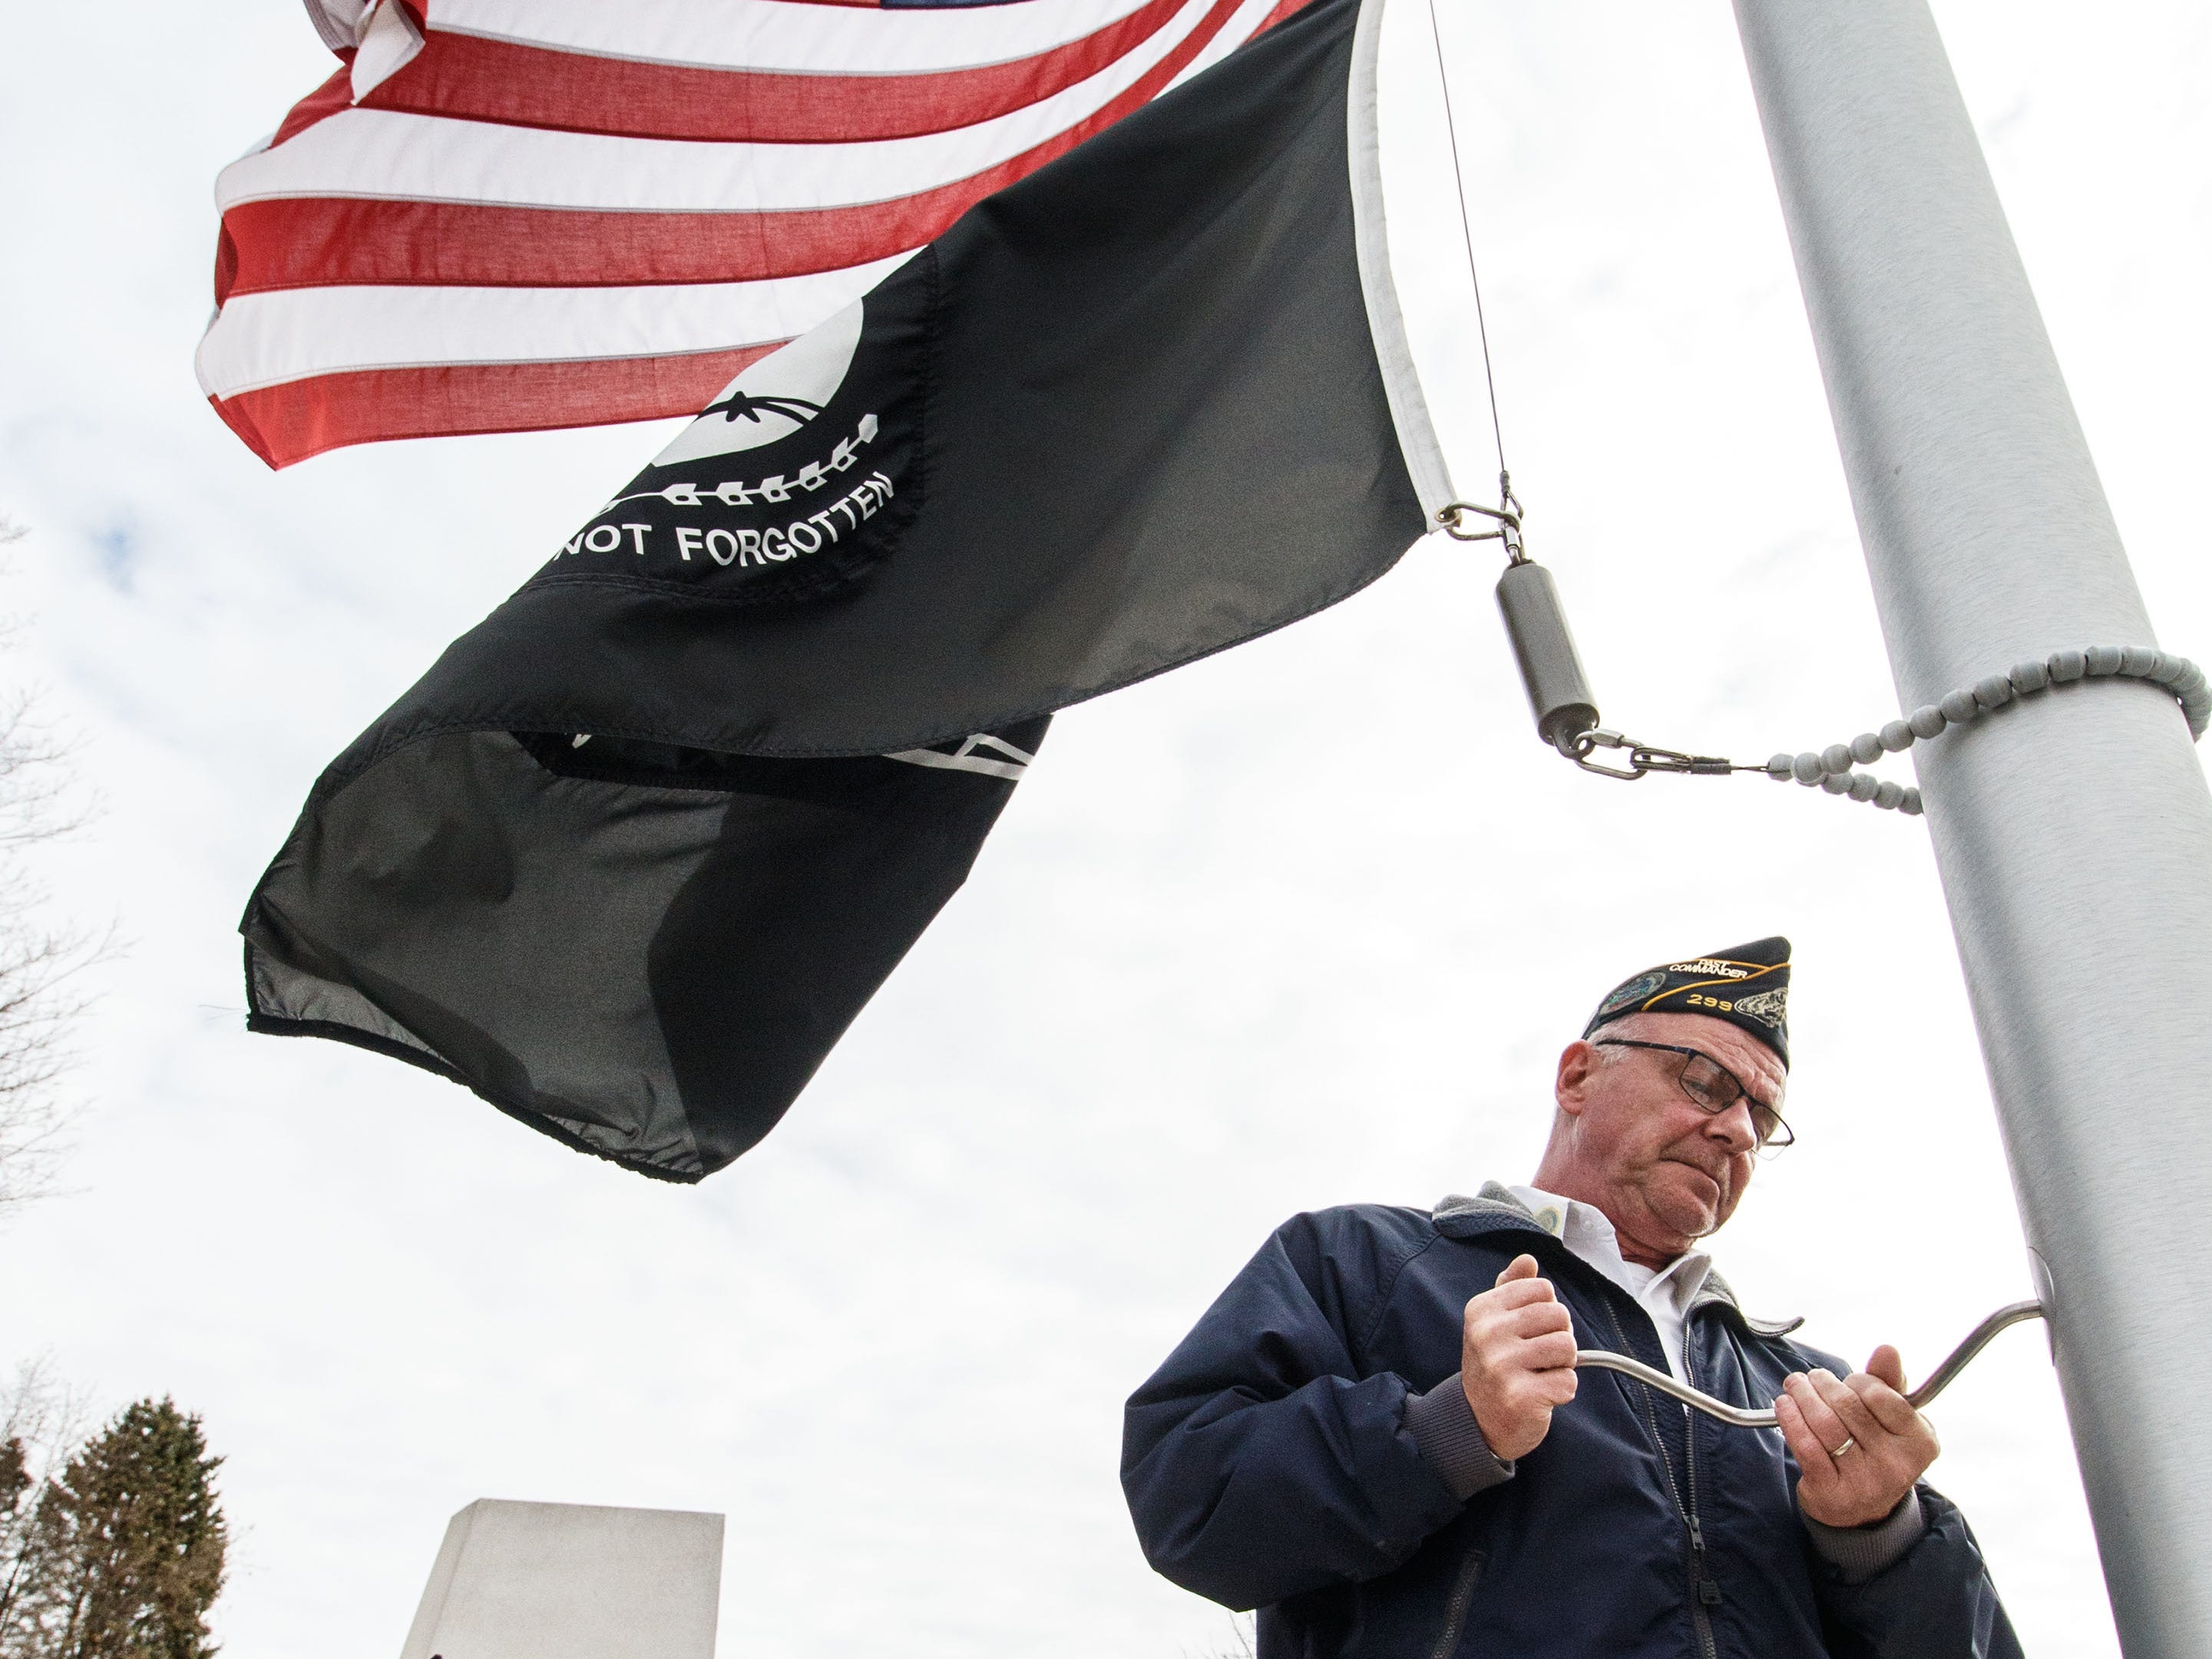 Joe Huber of American Legion Post 299 in Hales Corners lowers the flag to be retired during the flag changing ceremony at Hales Corners Park on Sunday, Nov. 11, 2018.